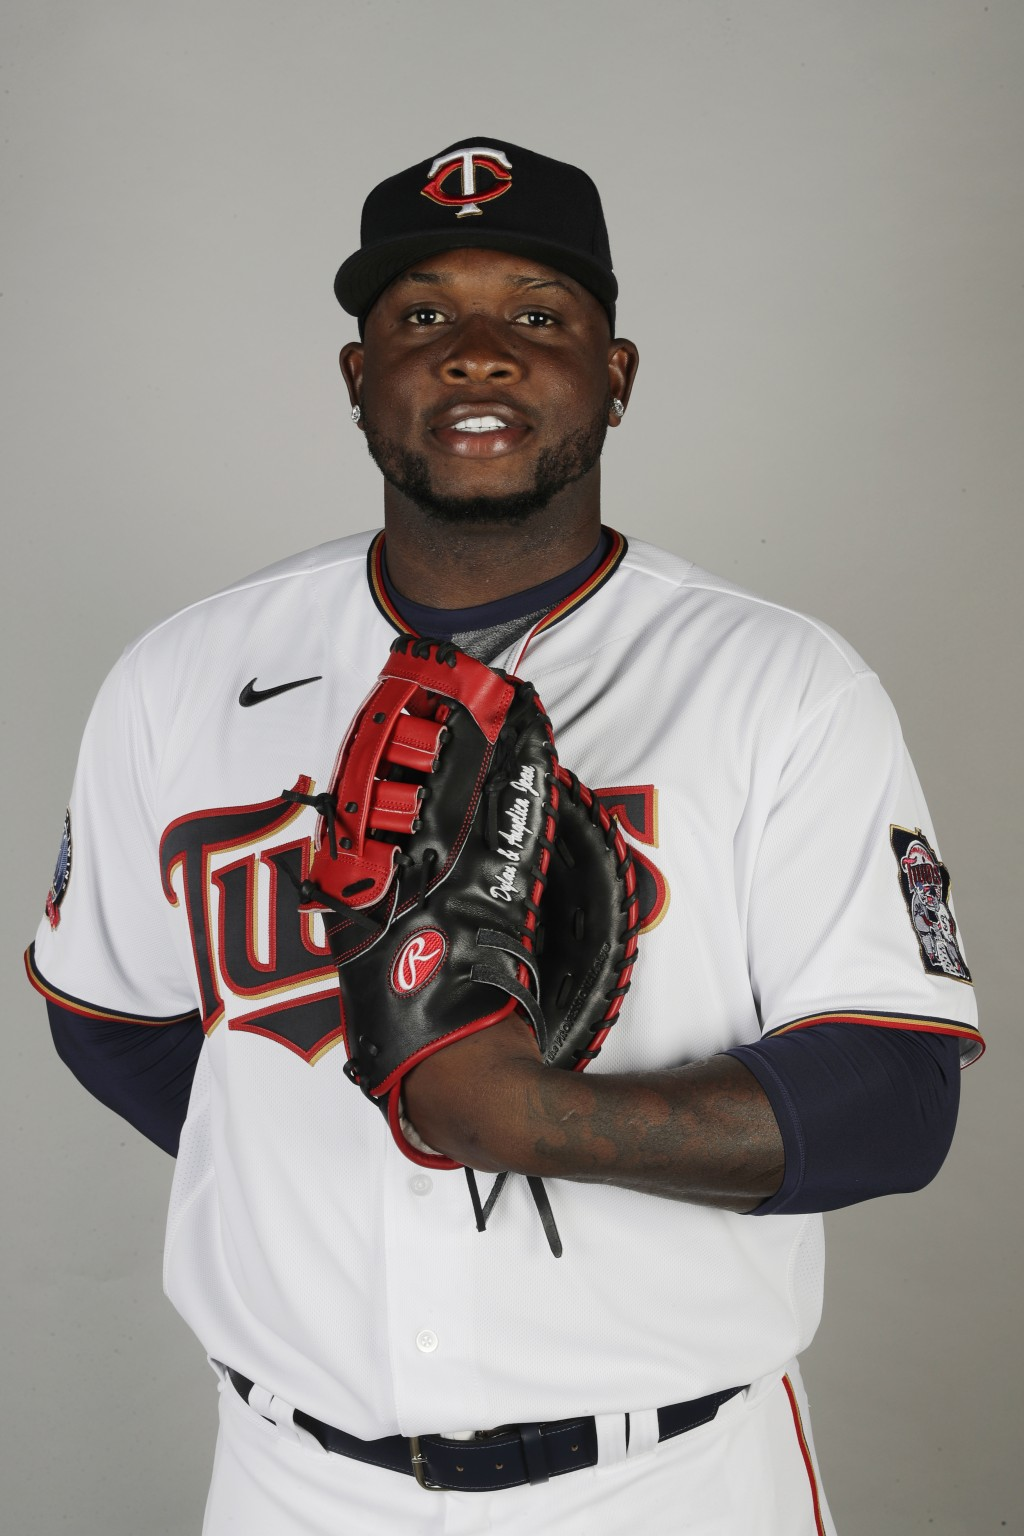 FILE - In this Feb. 20, 2020 file photo, Miguel Sano of the Minnesota Twins poses for a photo in Fort Myers, Fl. Authorities in the Dominican Republic...